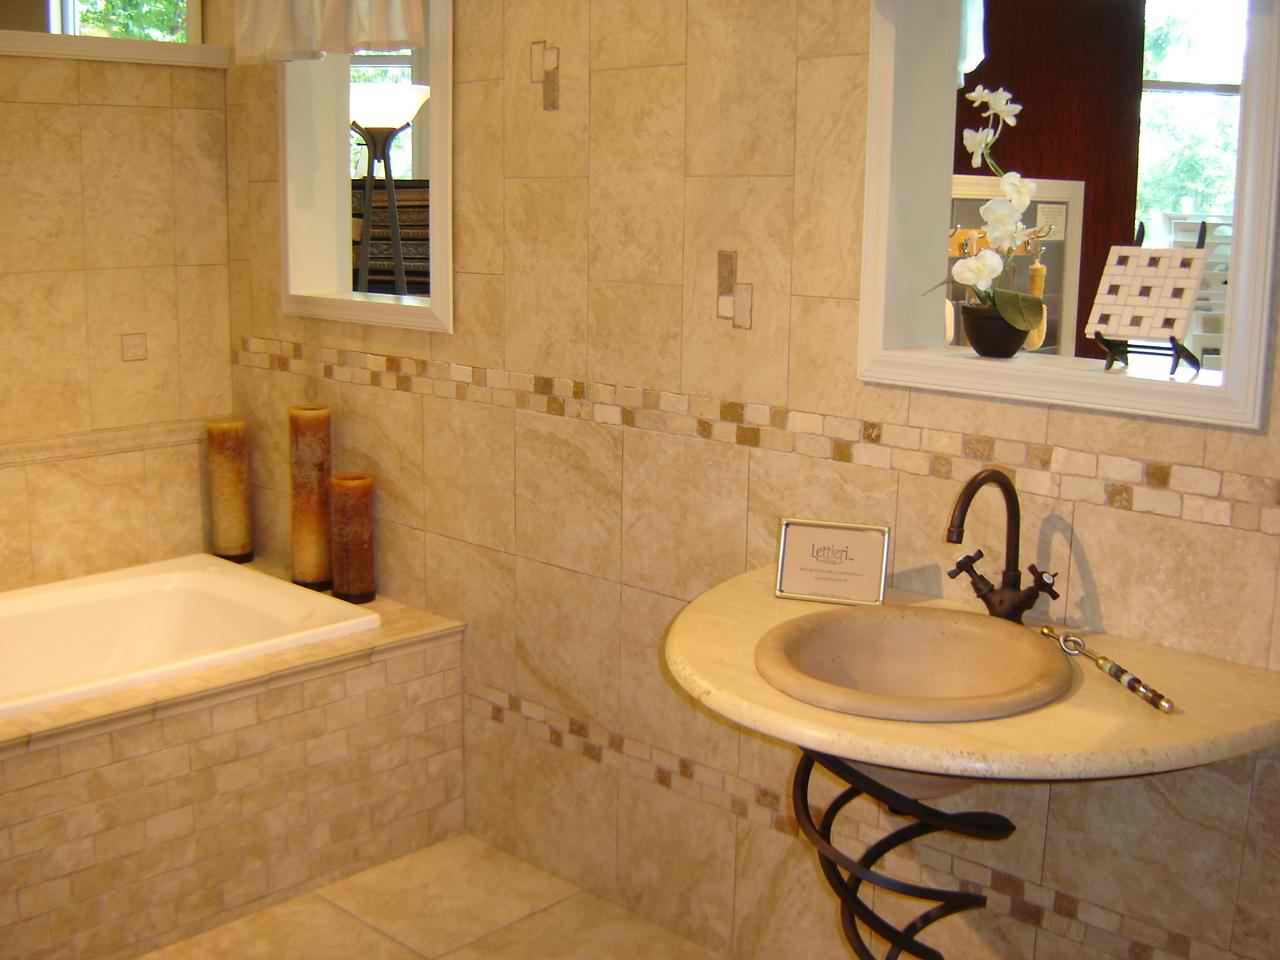 27 28 - Tile Bathroom Designs